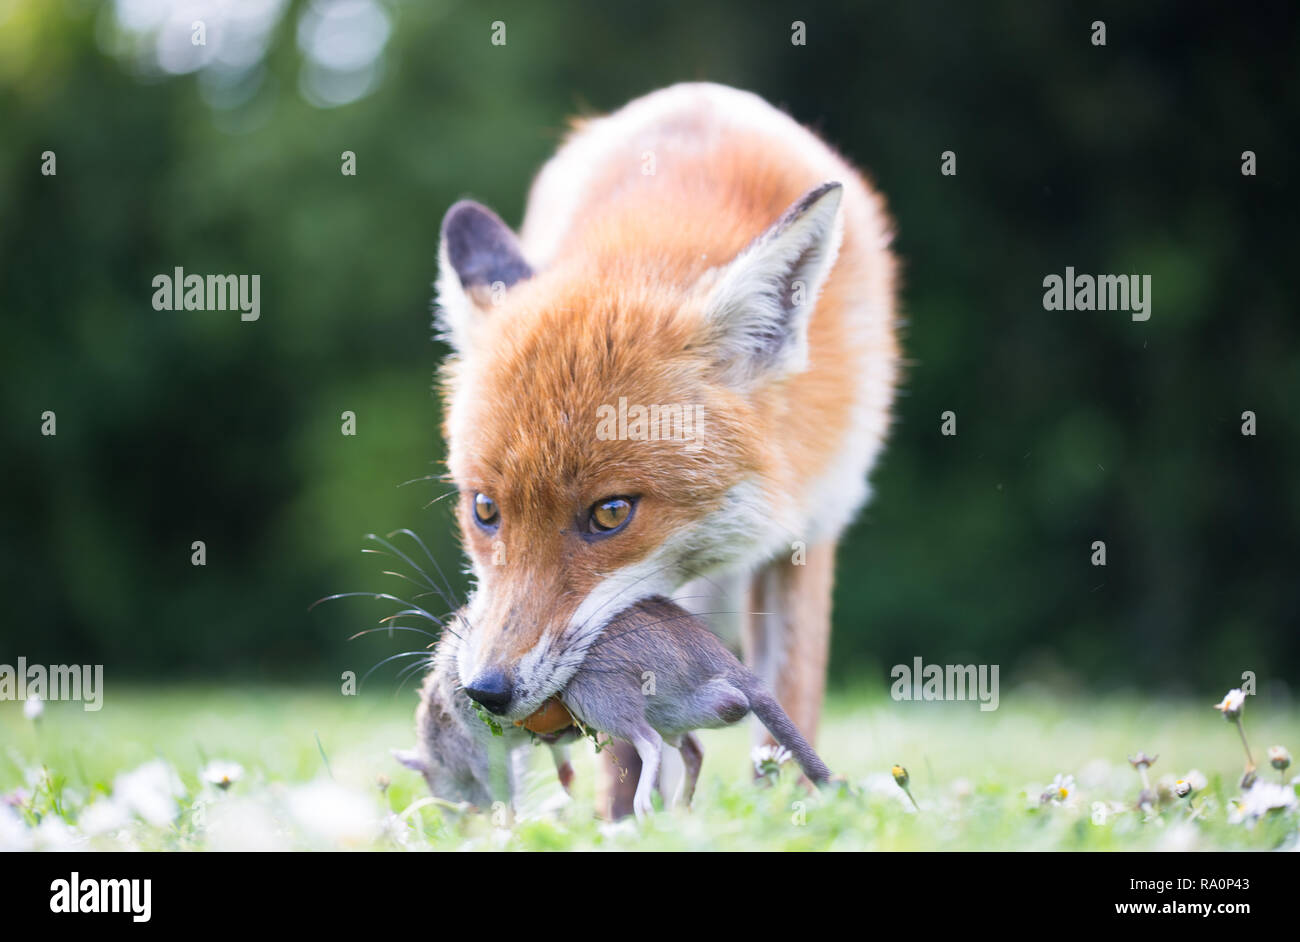 A Red fox in South West London with a freshly caught rat. - Stock Image